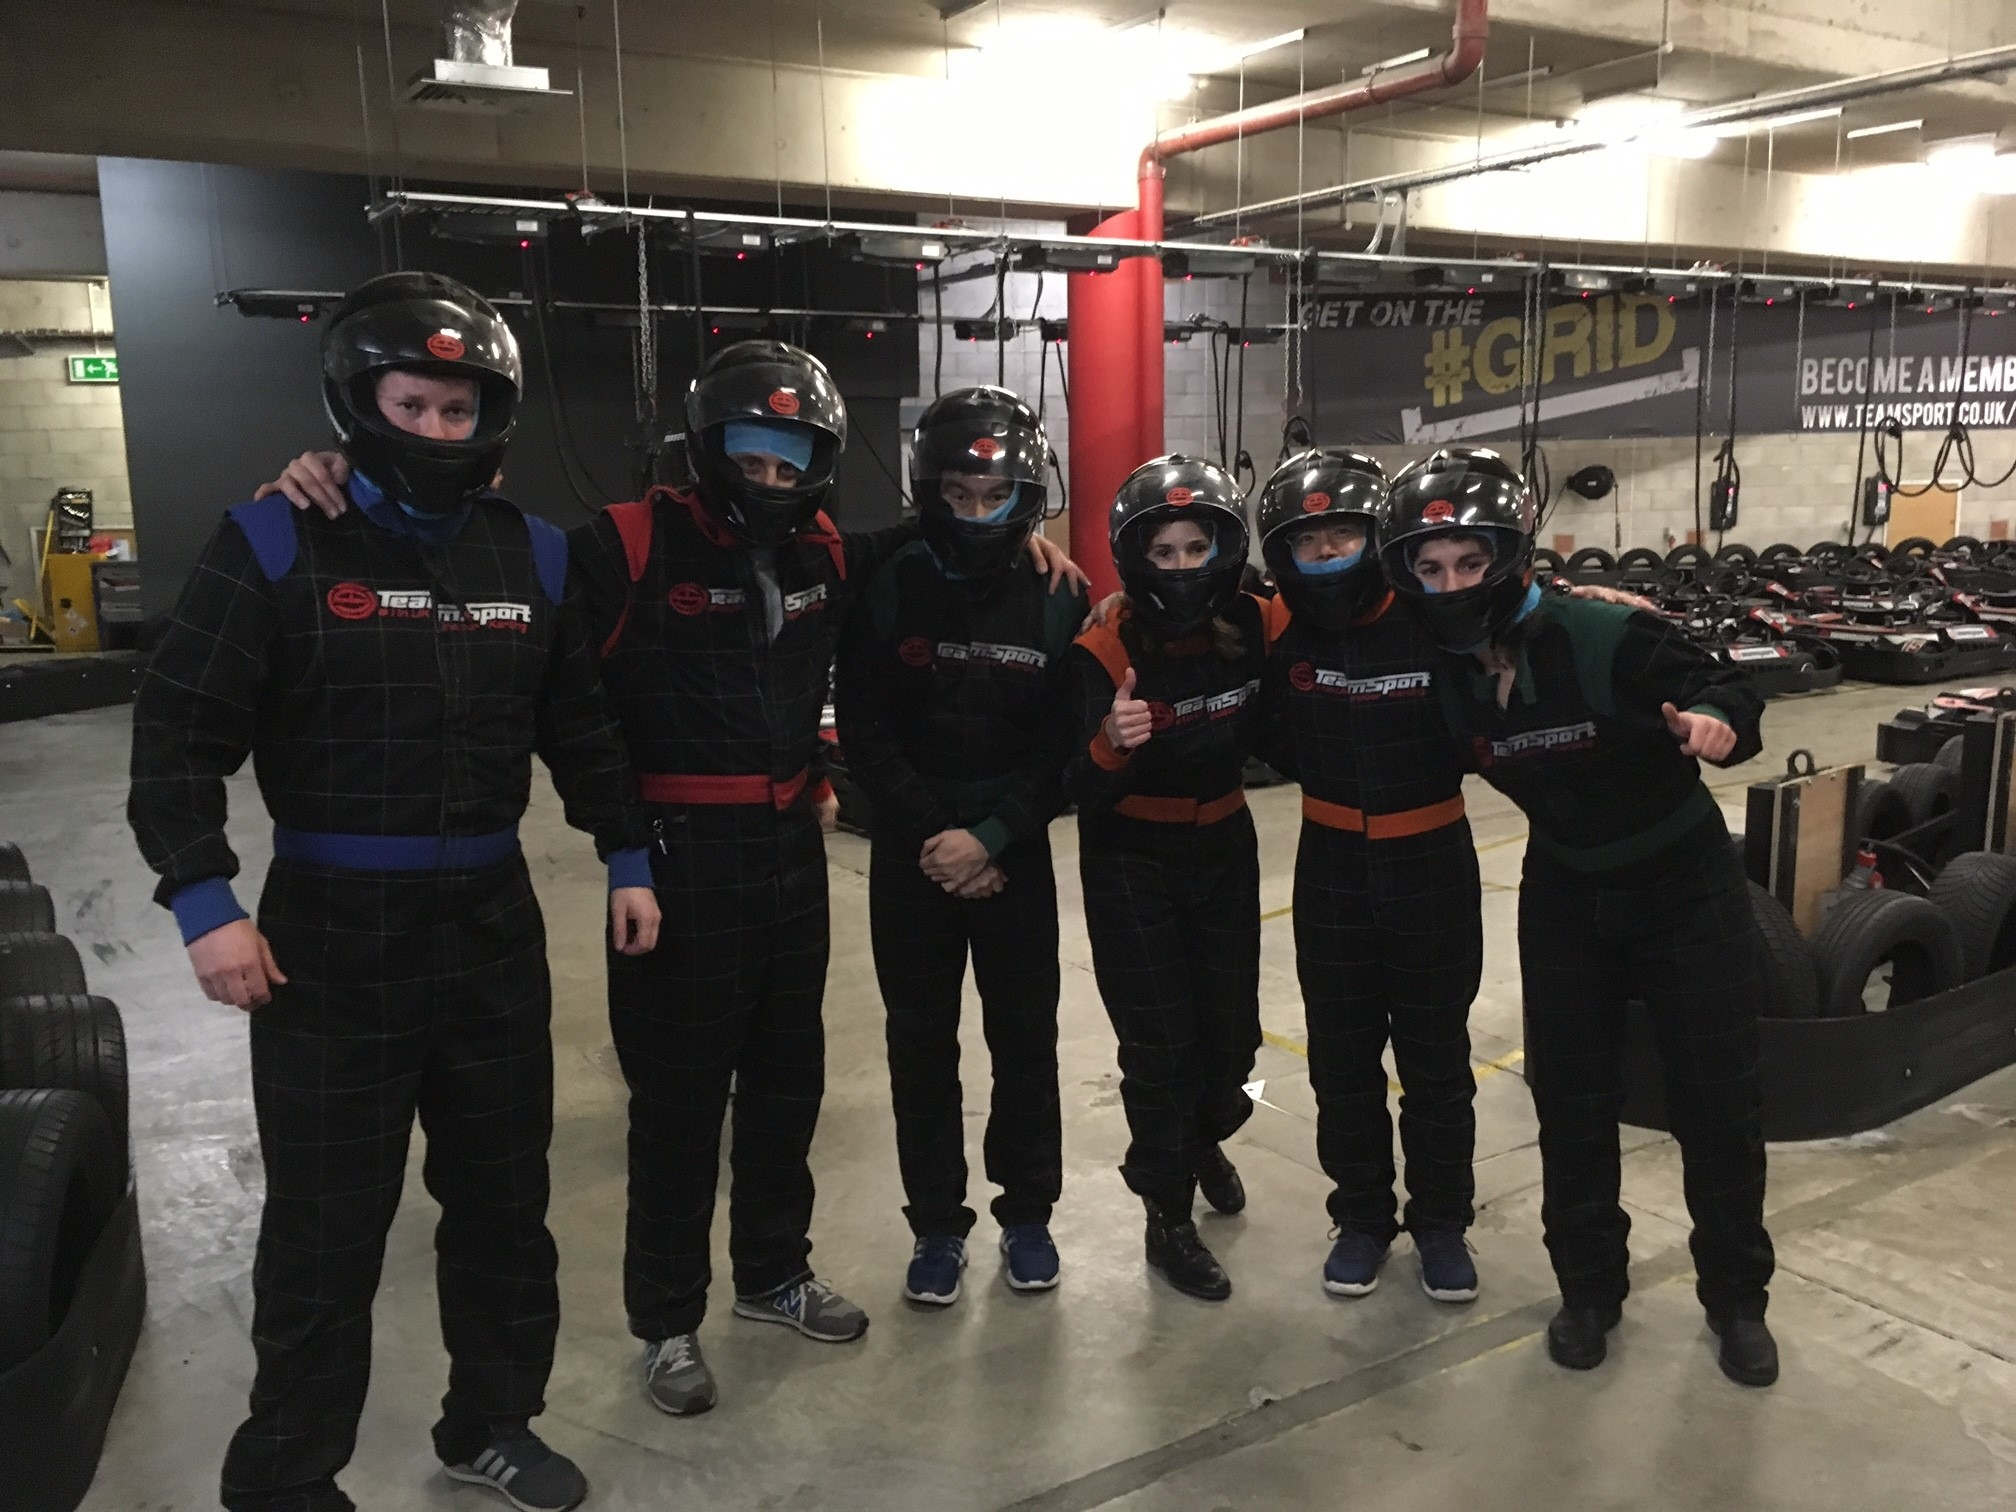 Go-Karting Fun in Manchester